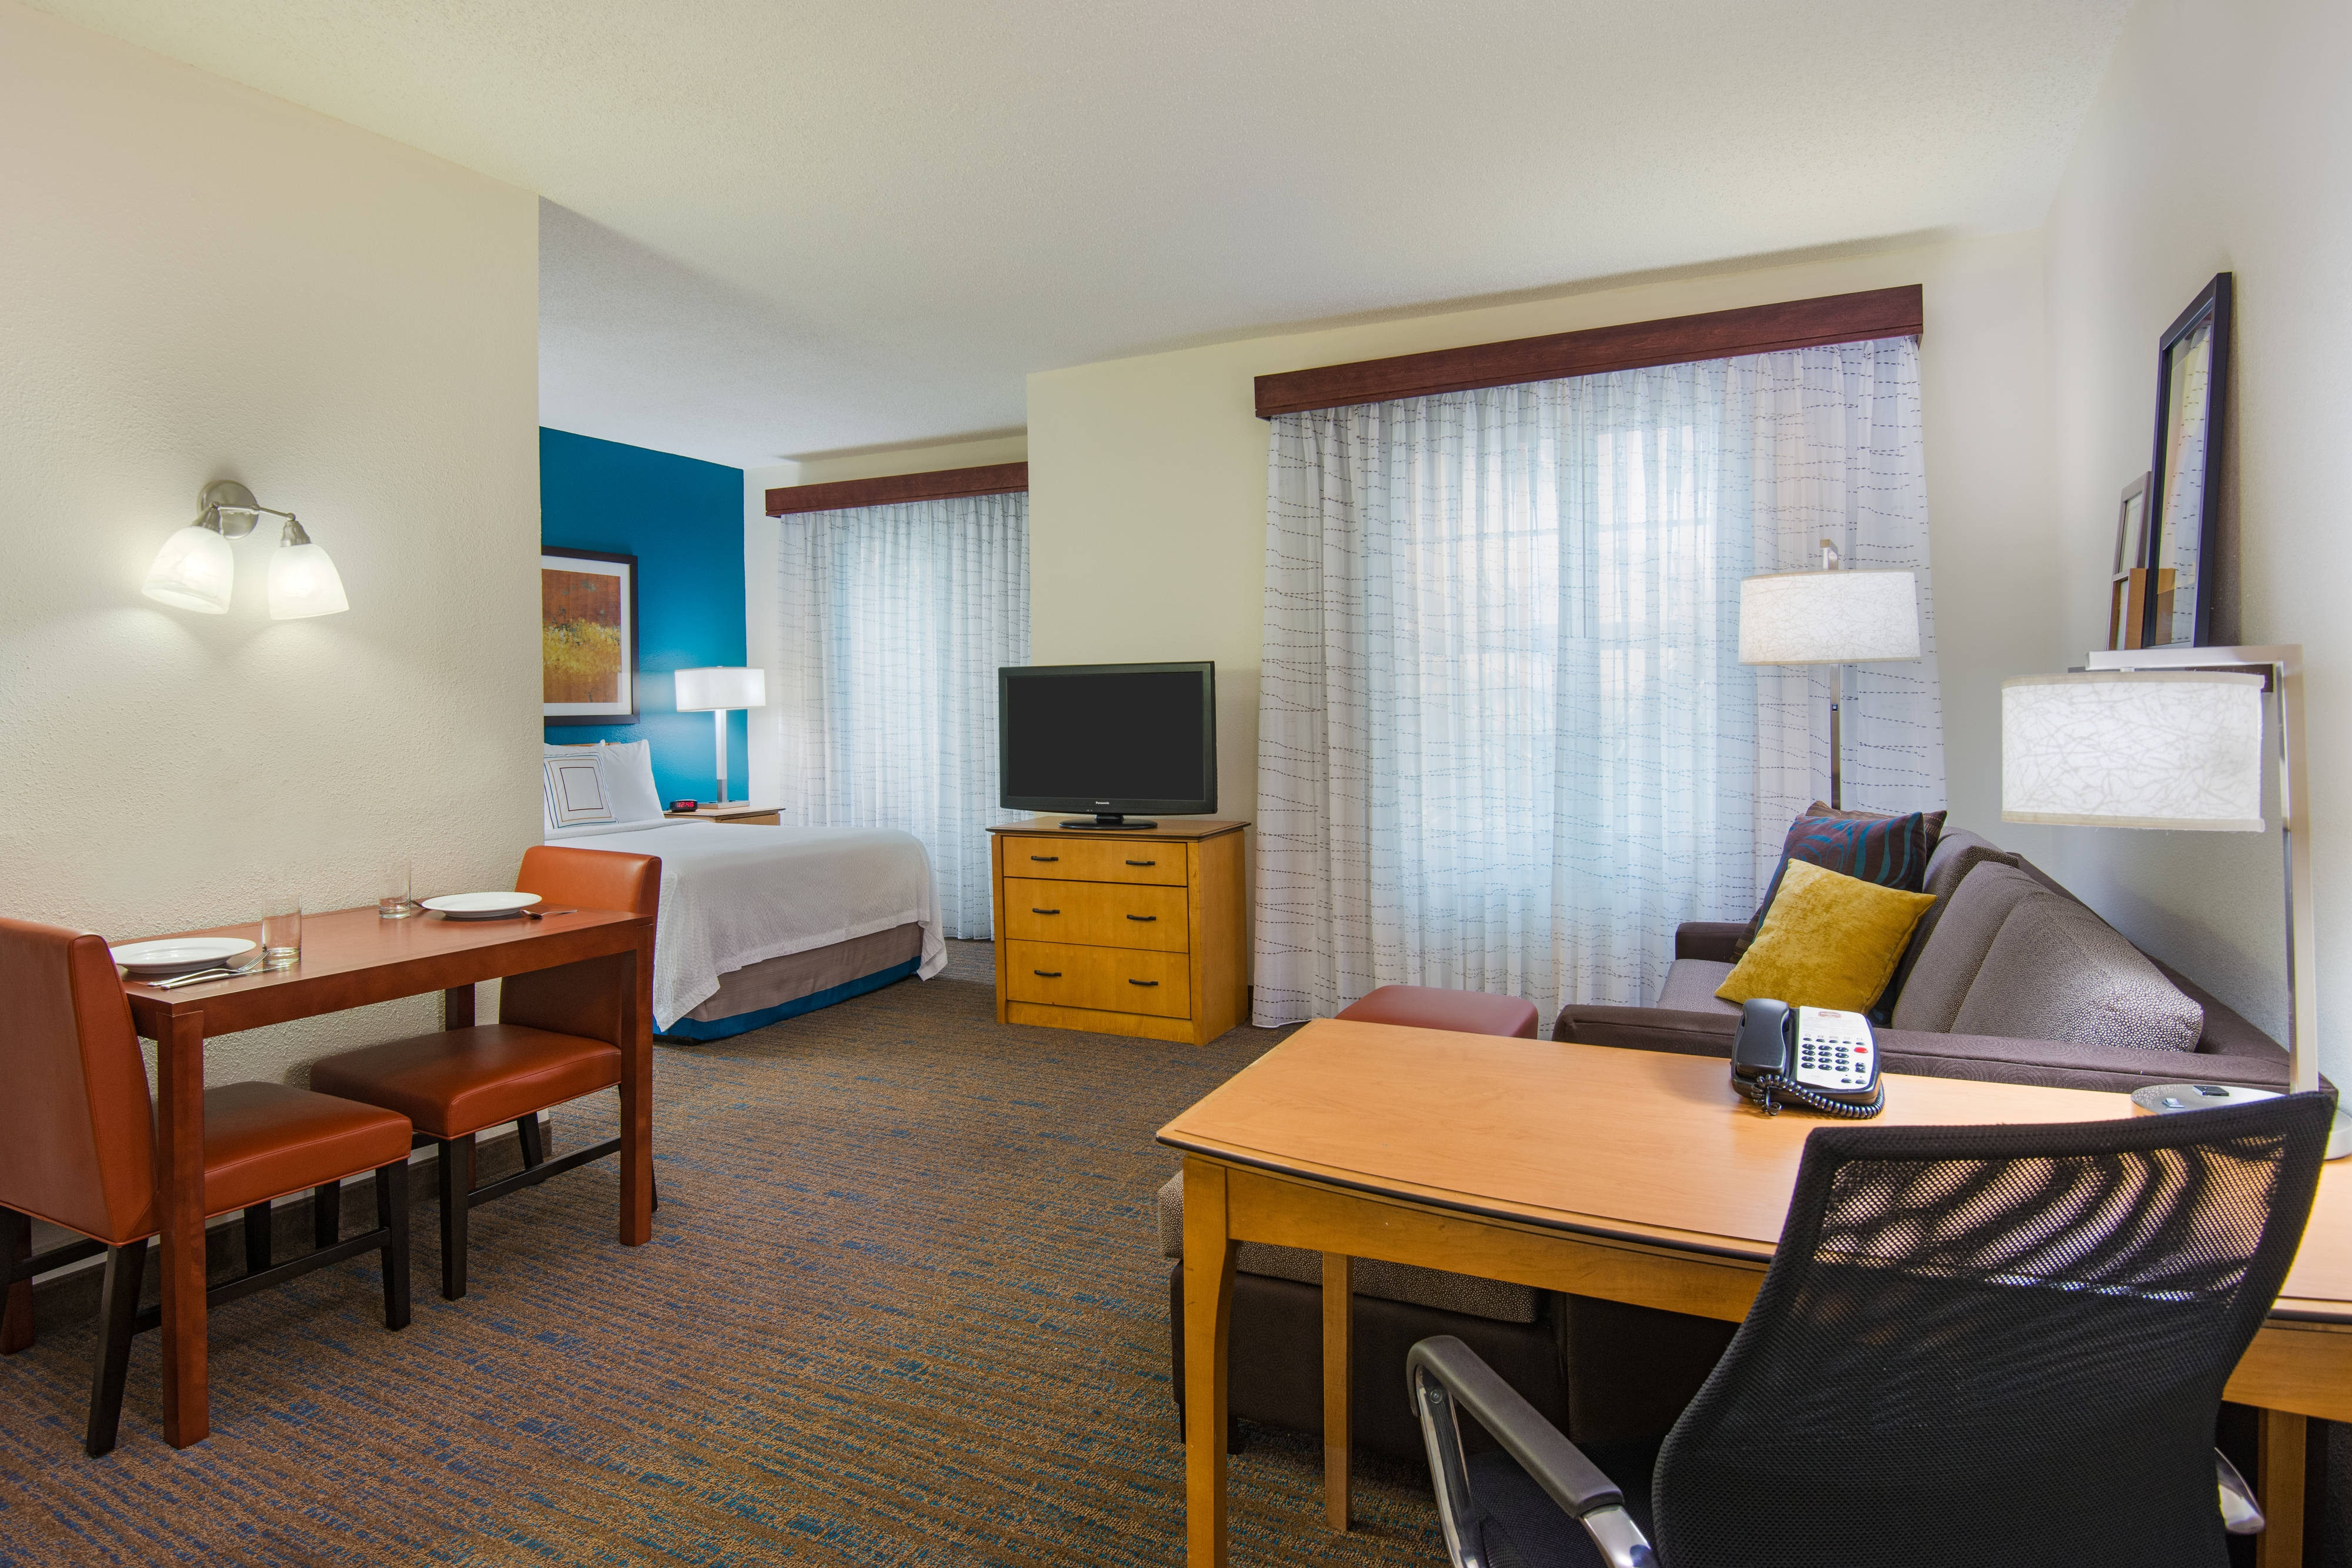 hotels with kitchens in rooms unfinished kitchen cabinet doors extended stay ft lauderdale | fort suites